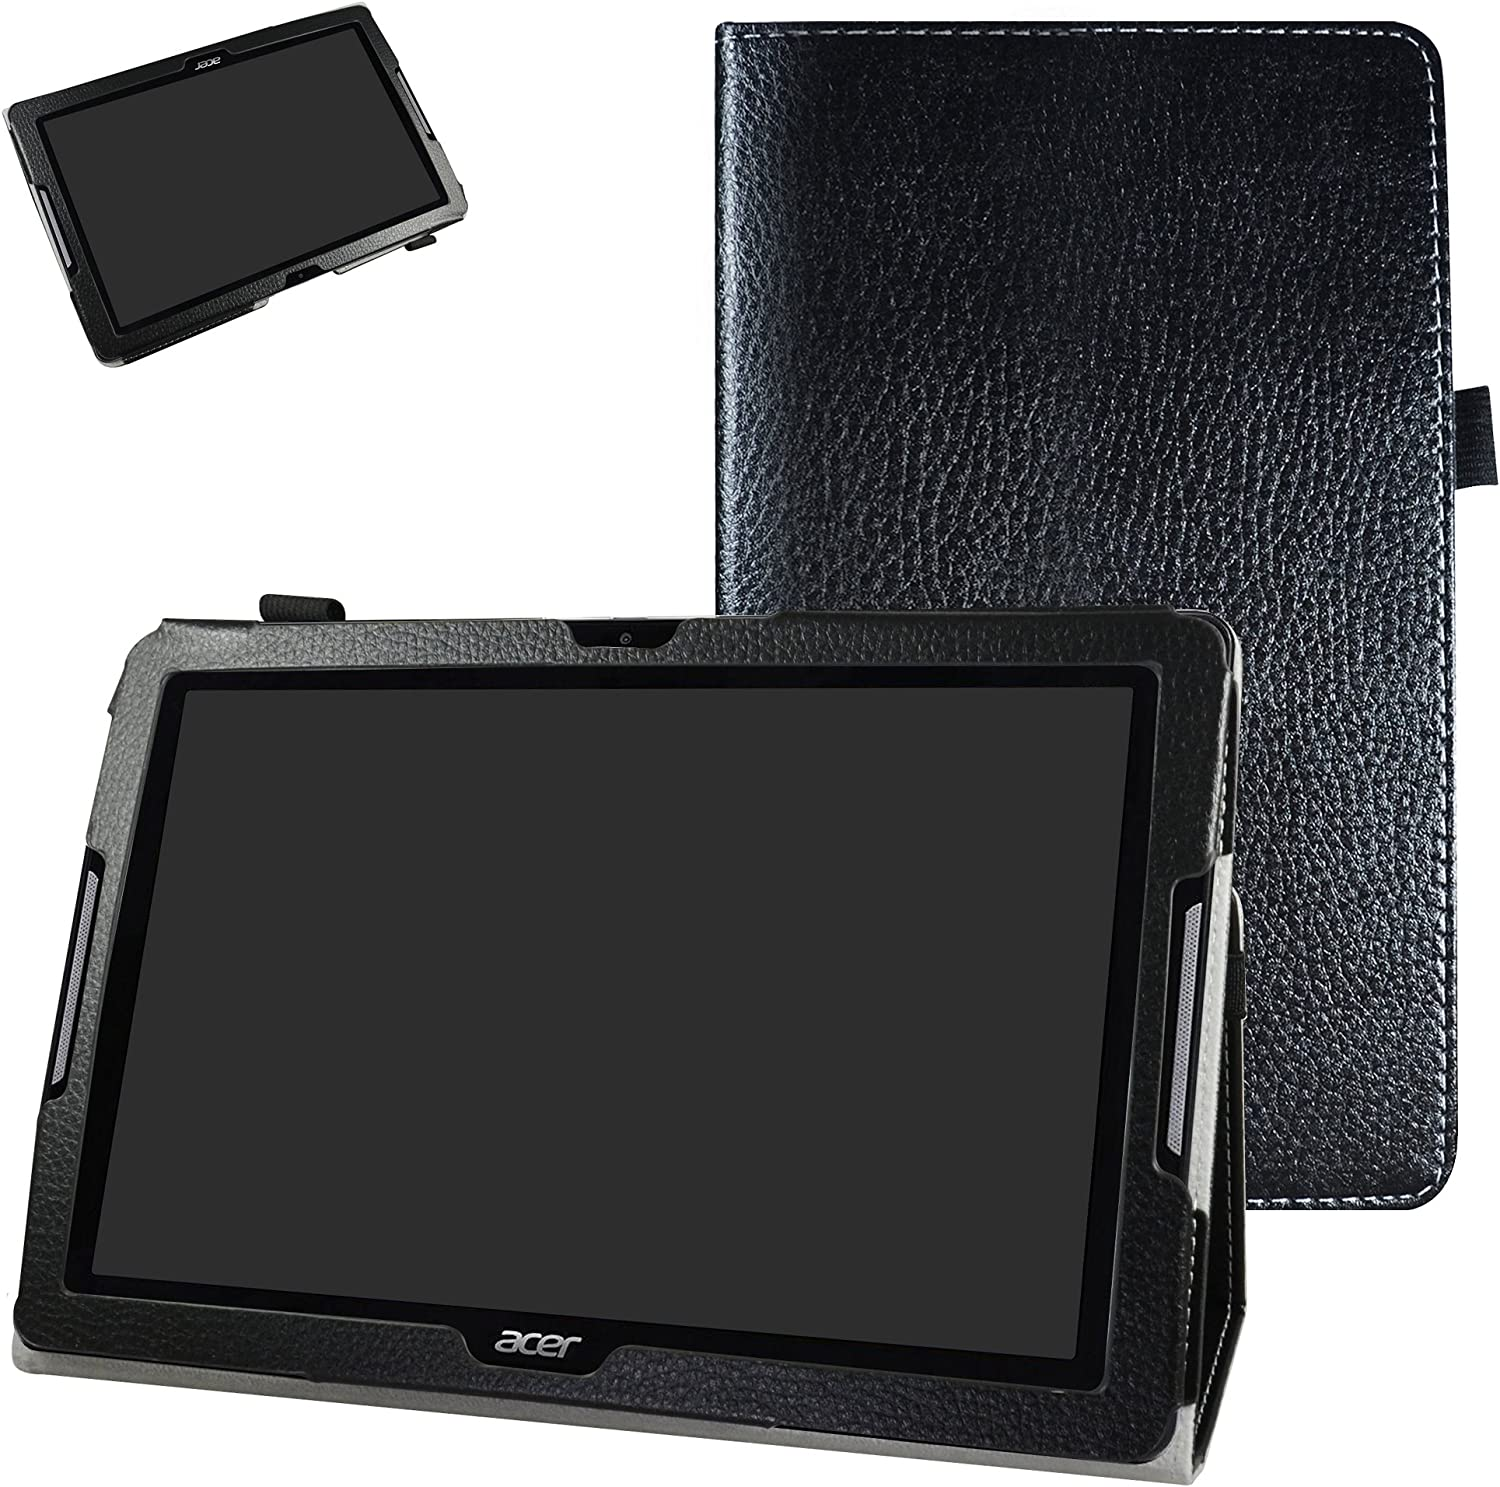 "Acer Iconia One 10 B3-A30 Case,Mama Mouth PU Leather Folio 2-Folding Stand Cover with Stylus Holder for 10.1"" Acer Iconia One 10 B3-A30 Android Tablet, Black"